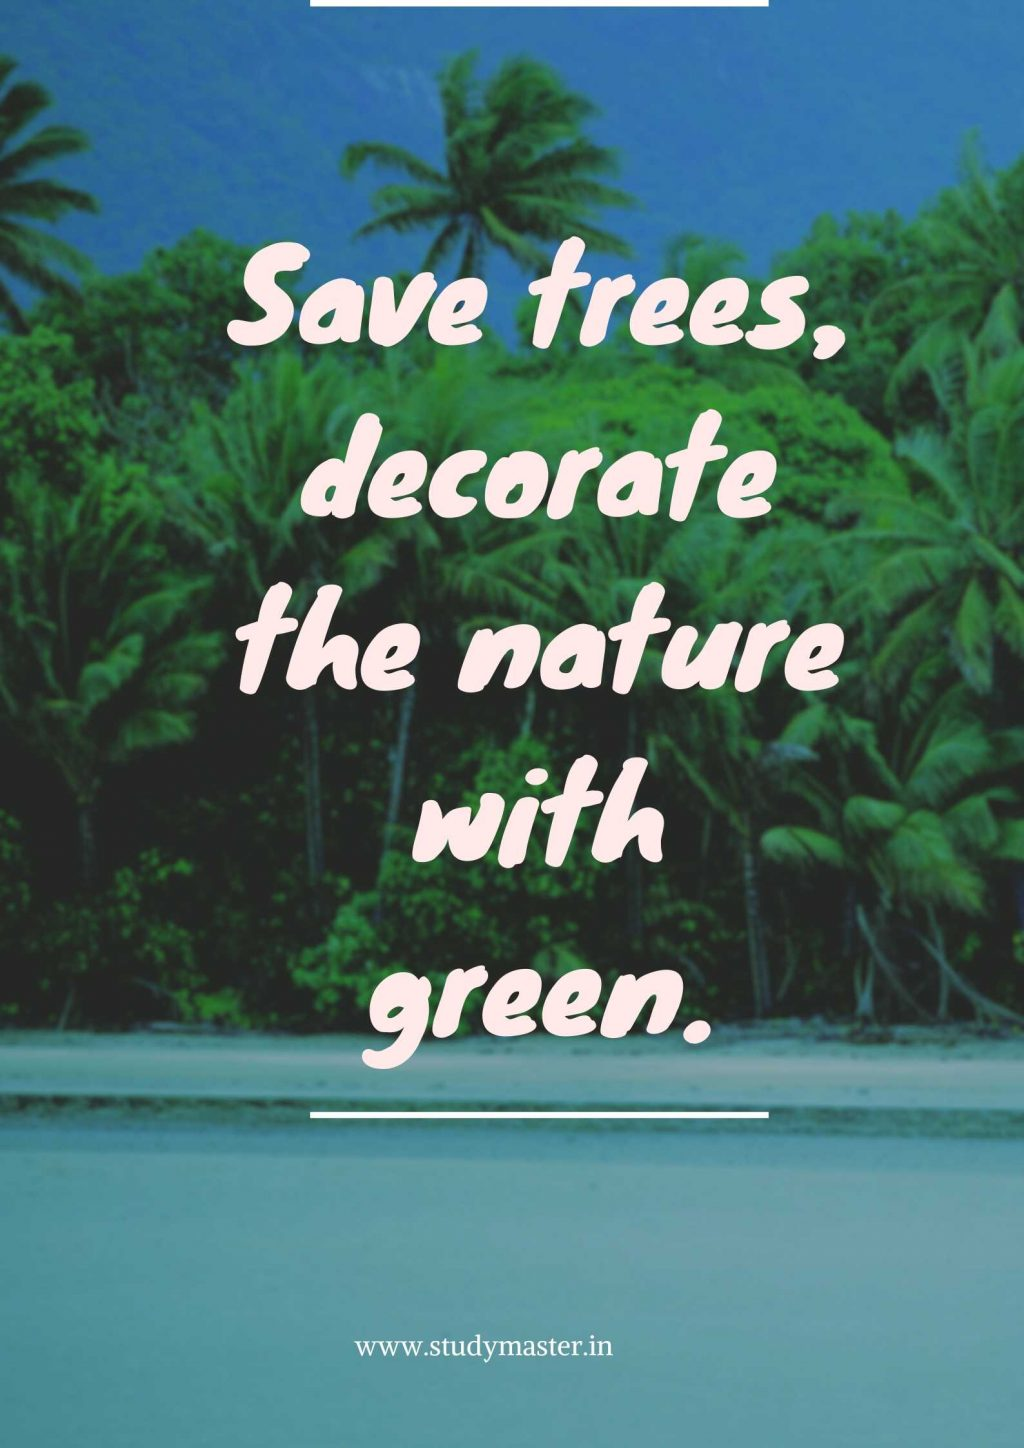 save trees poster